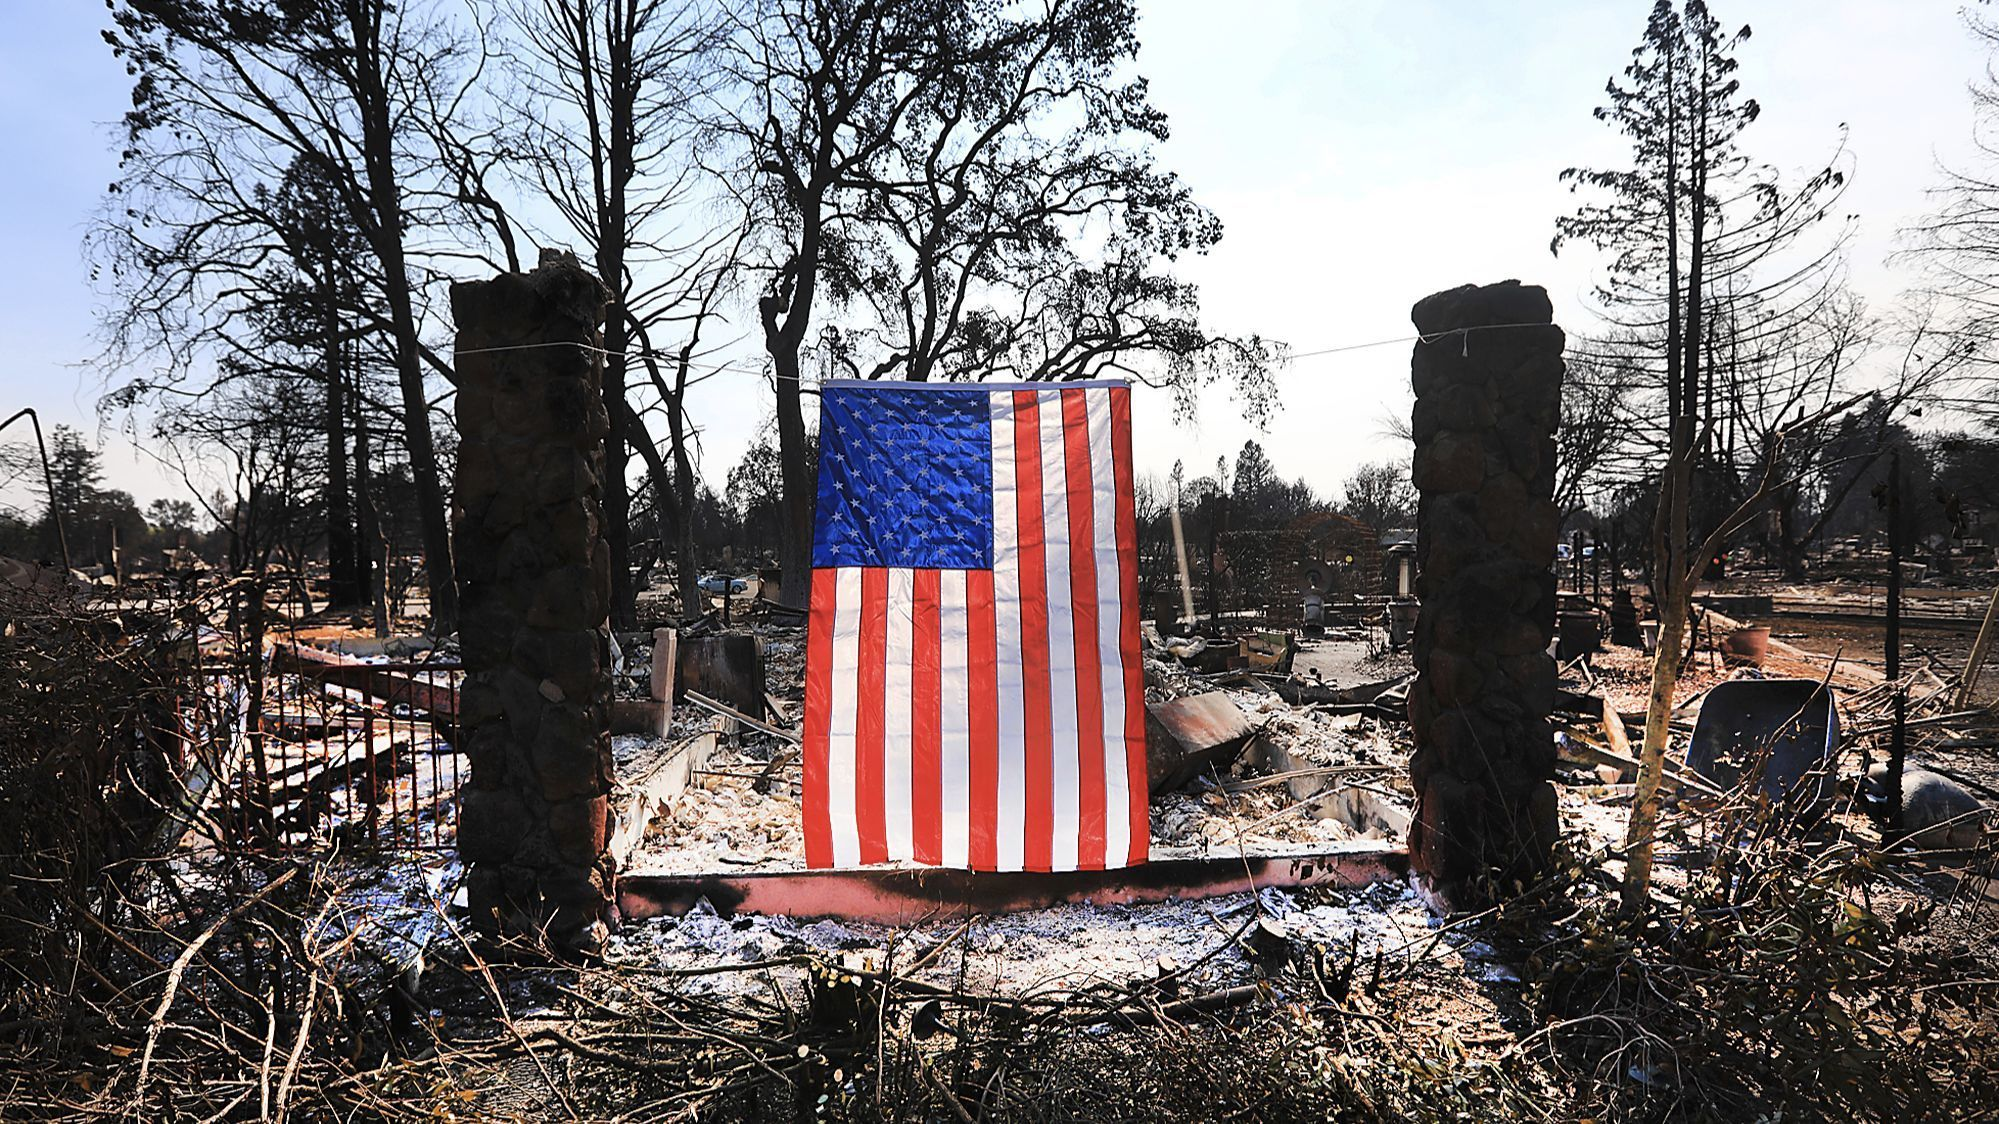 On Willowview Court in Santa Rosa, a homeowner displays an American flag amidst the destruction from the wildfire.